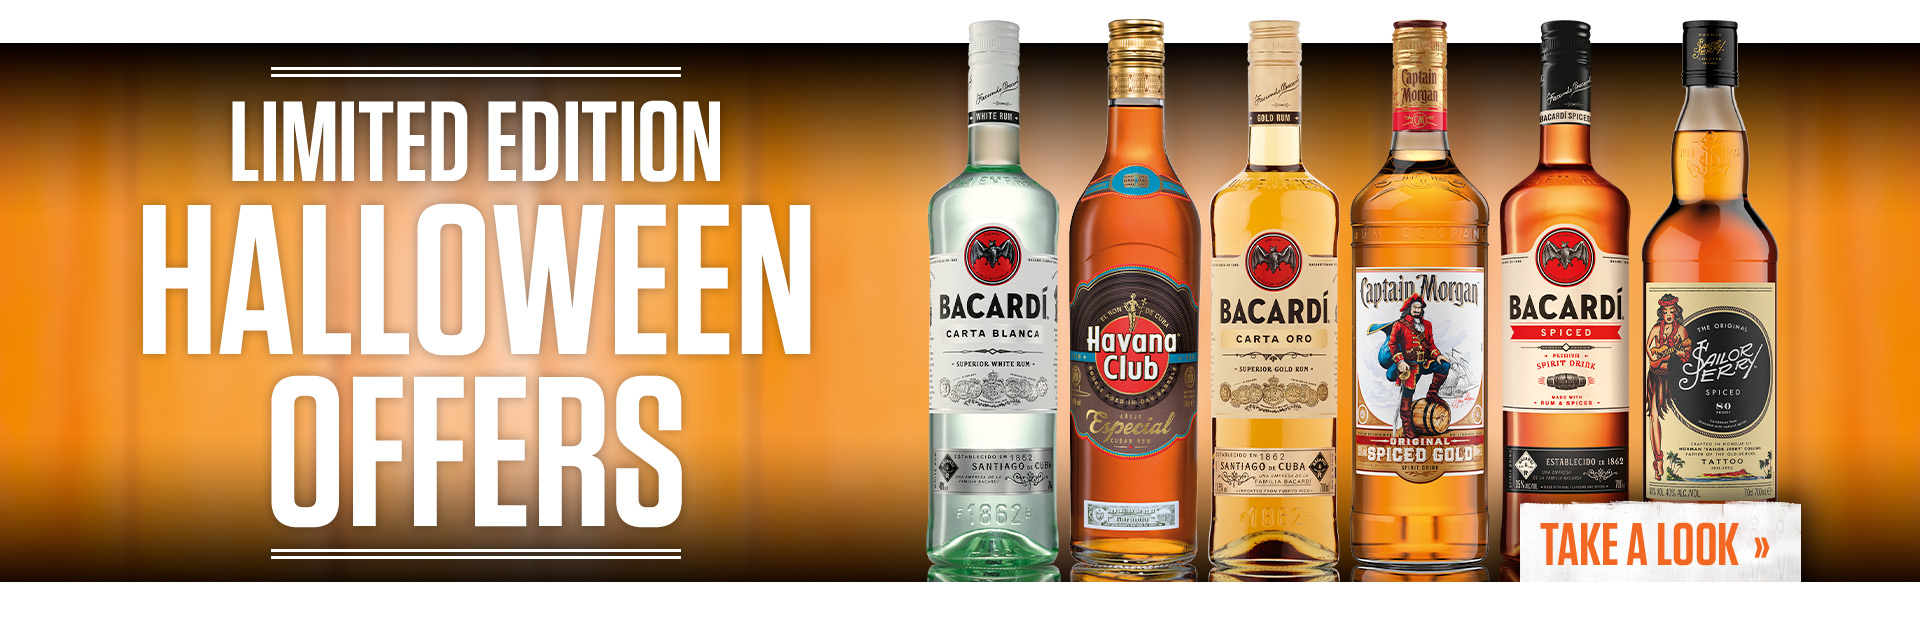 Drinks offers for Halloween at Sizzling